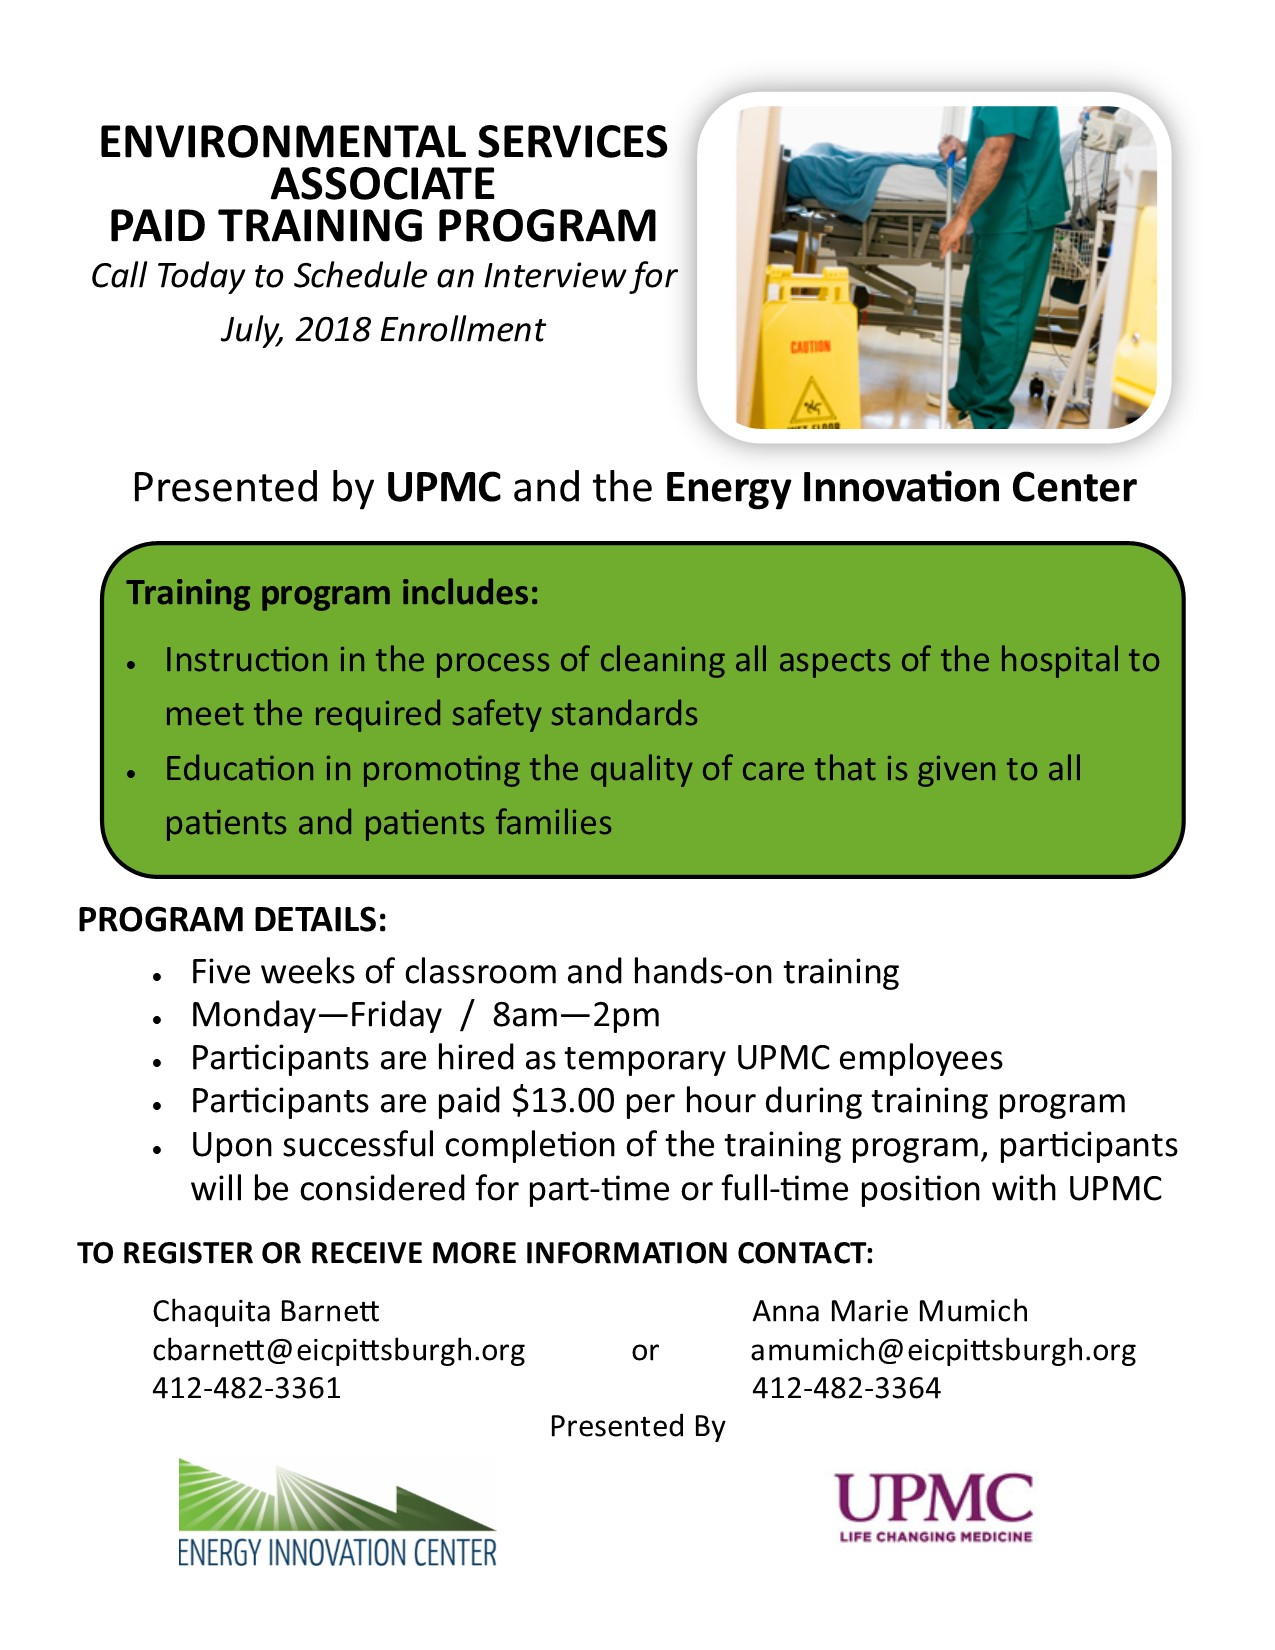 UPMC PAID ENVIRONMENTAL SERVICES ASSOCIATE PAID TRAINING PROGRAM